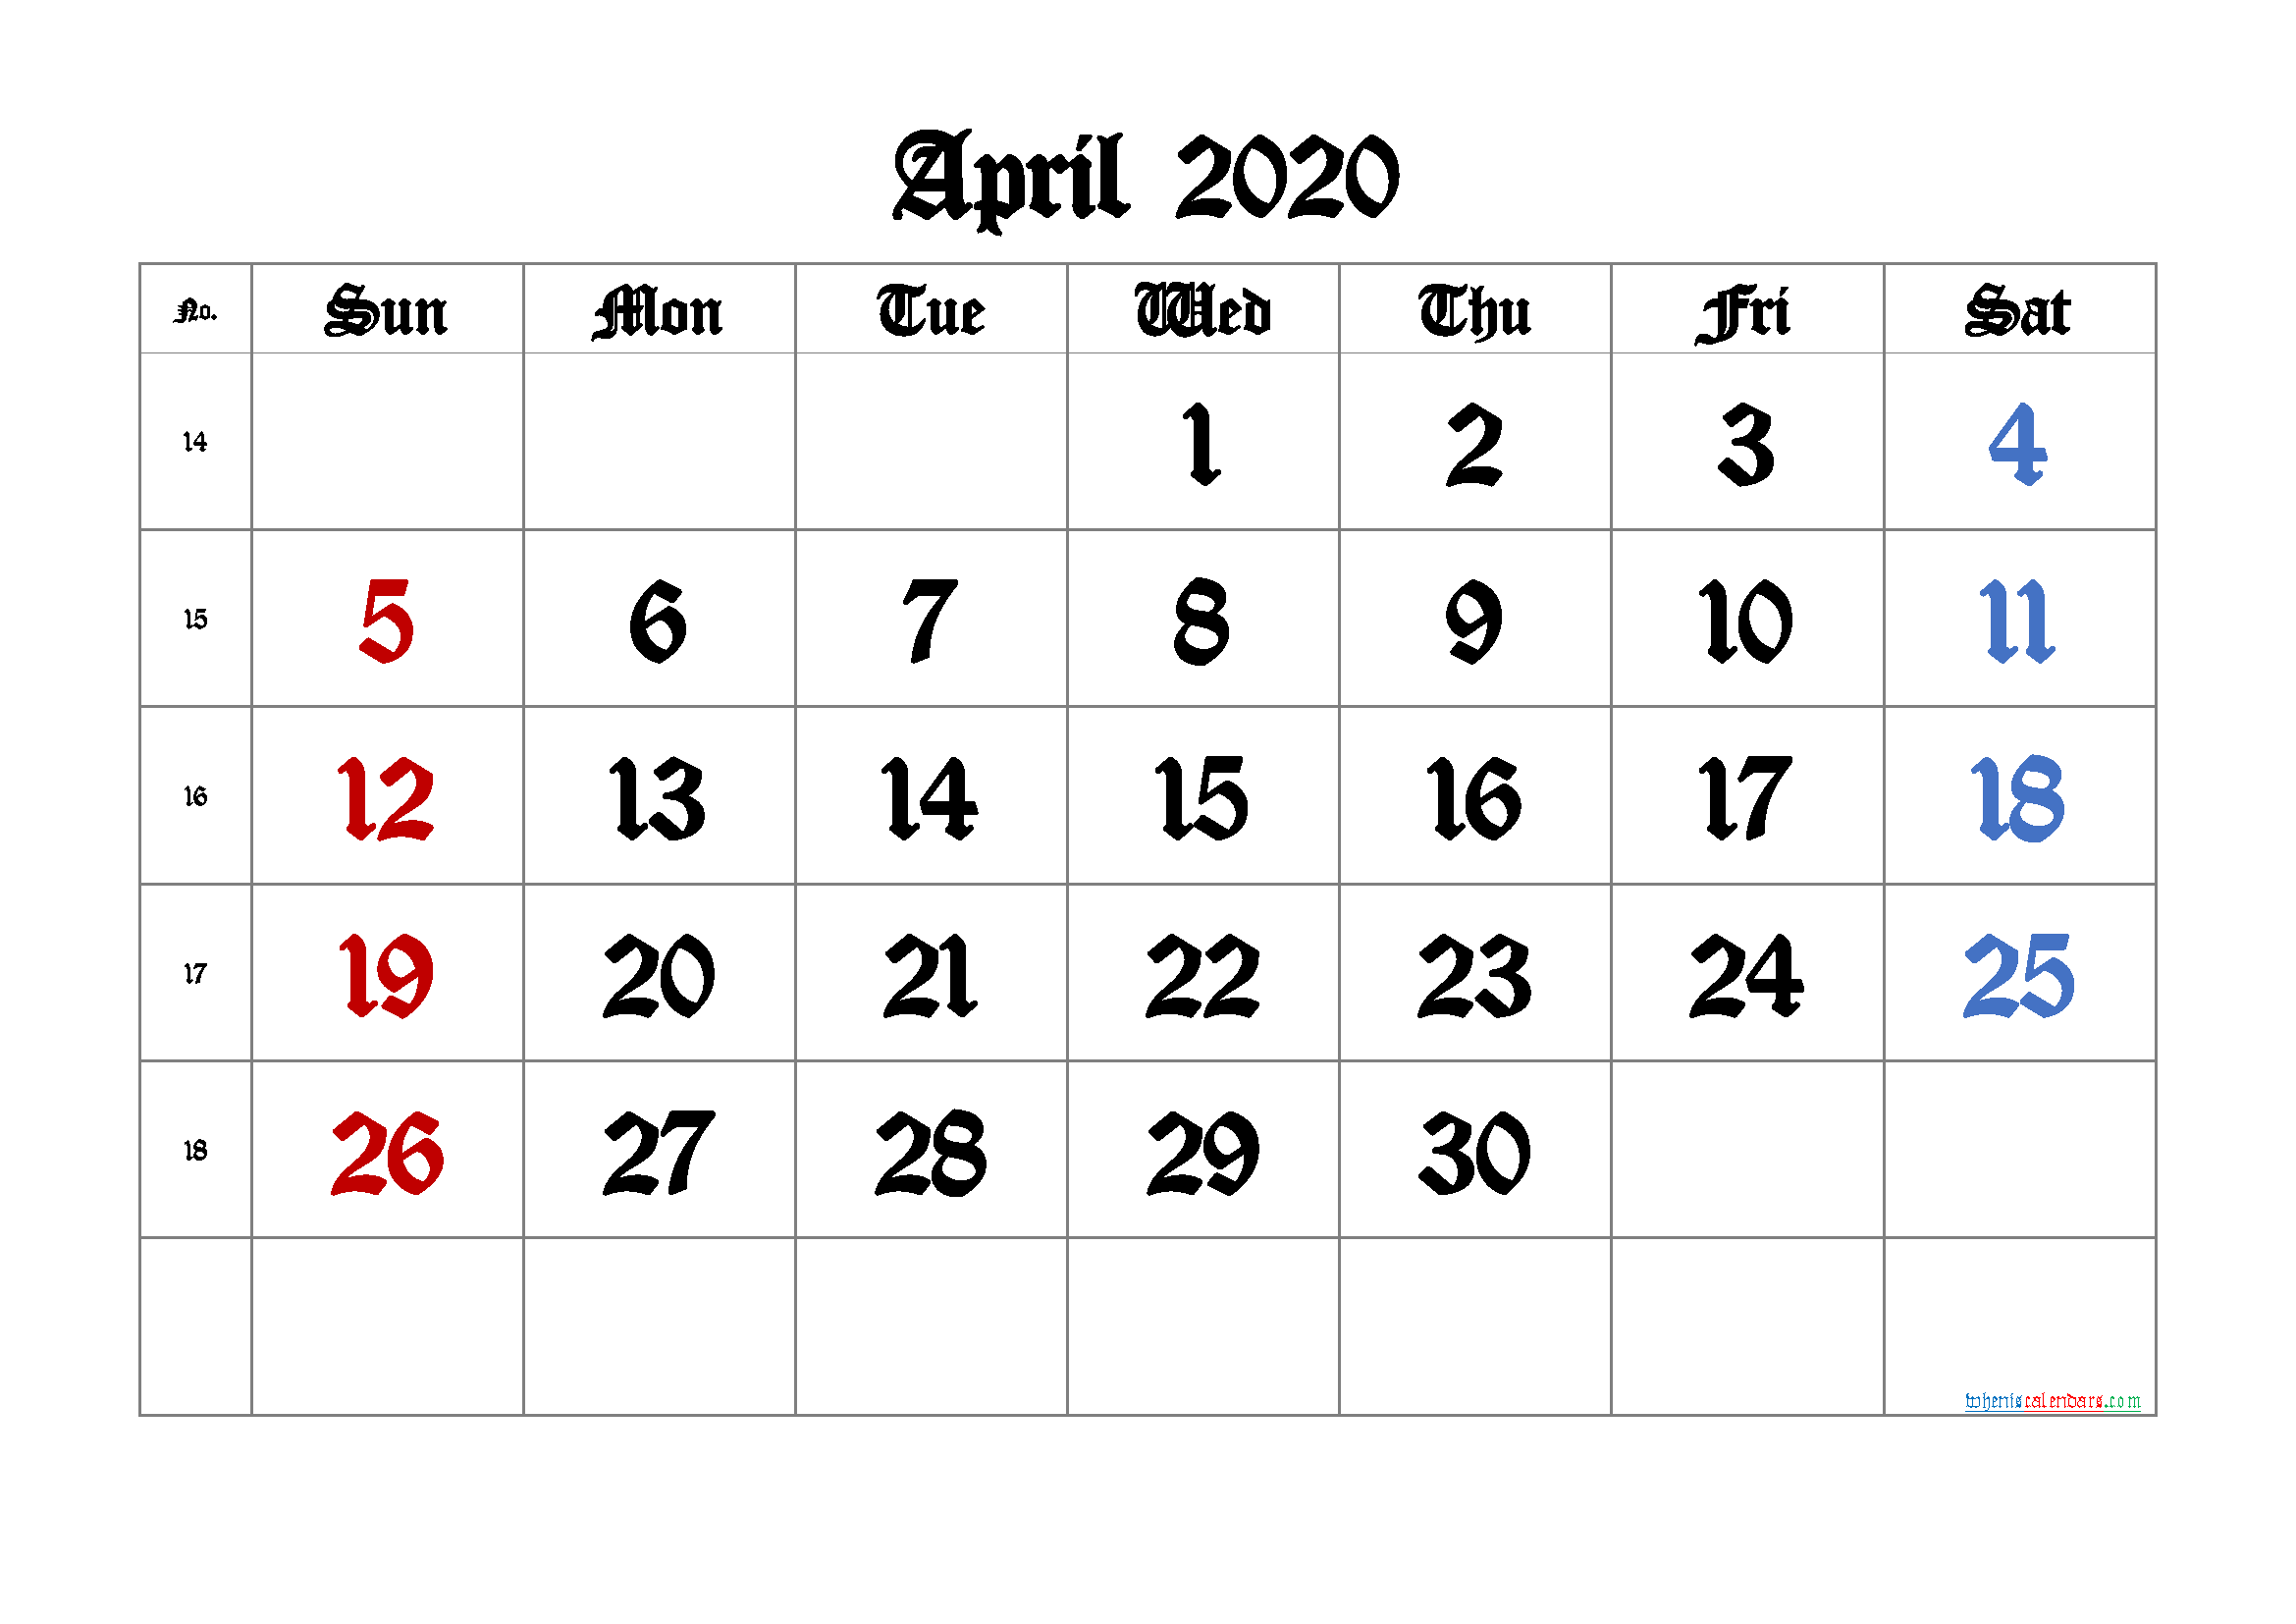 April 2020 Printable Calendar with Week Numbers